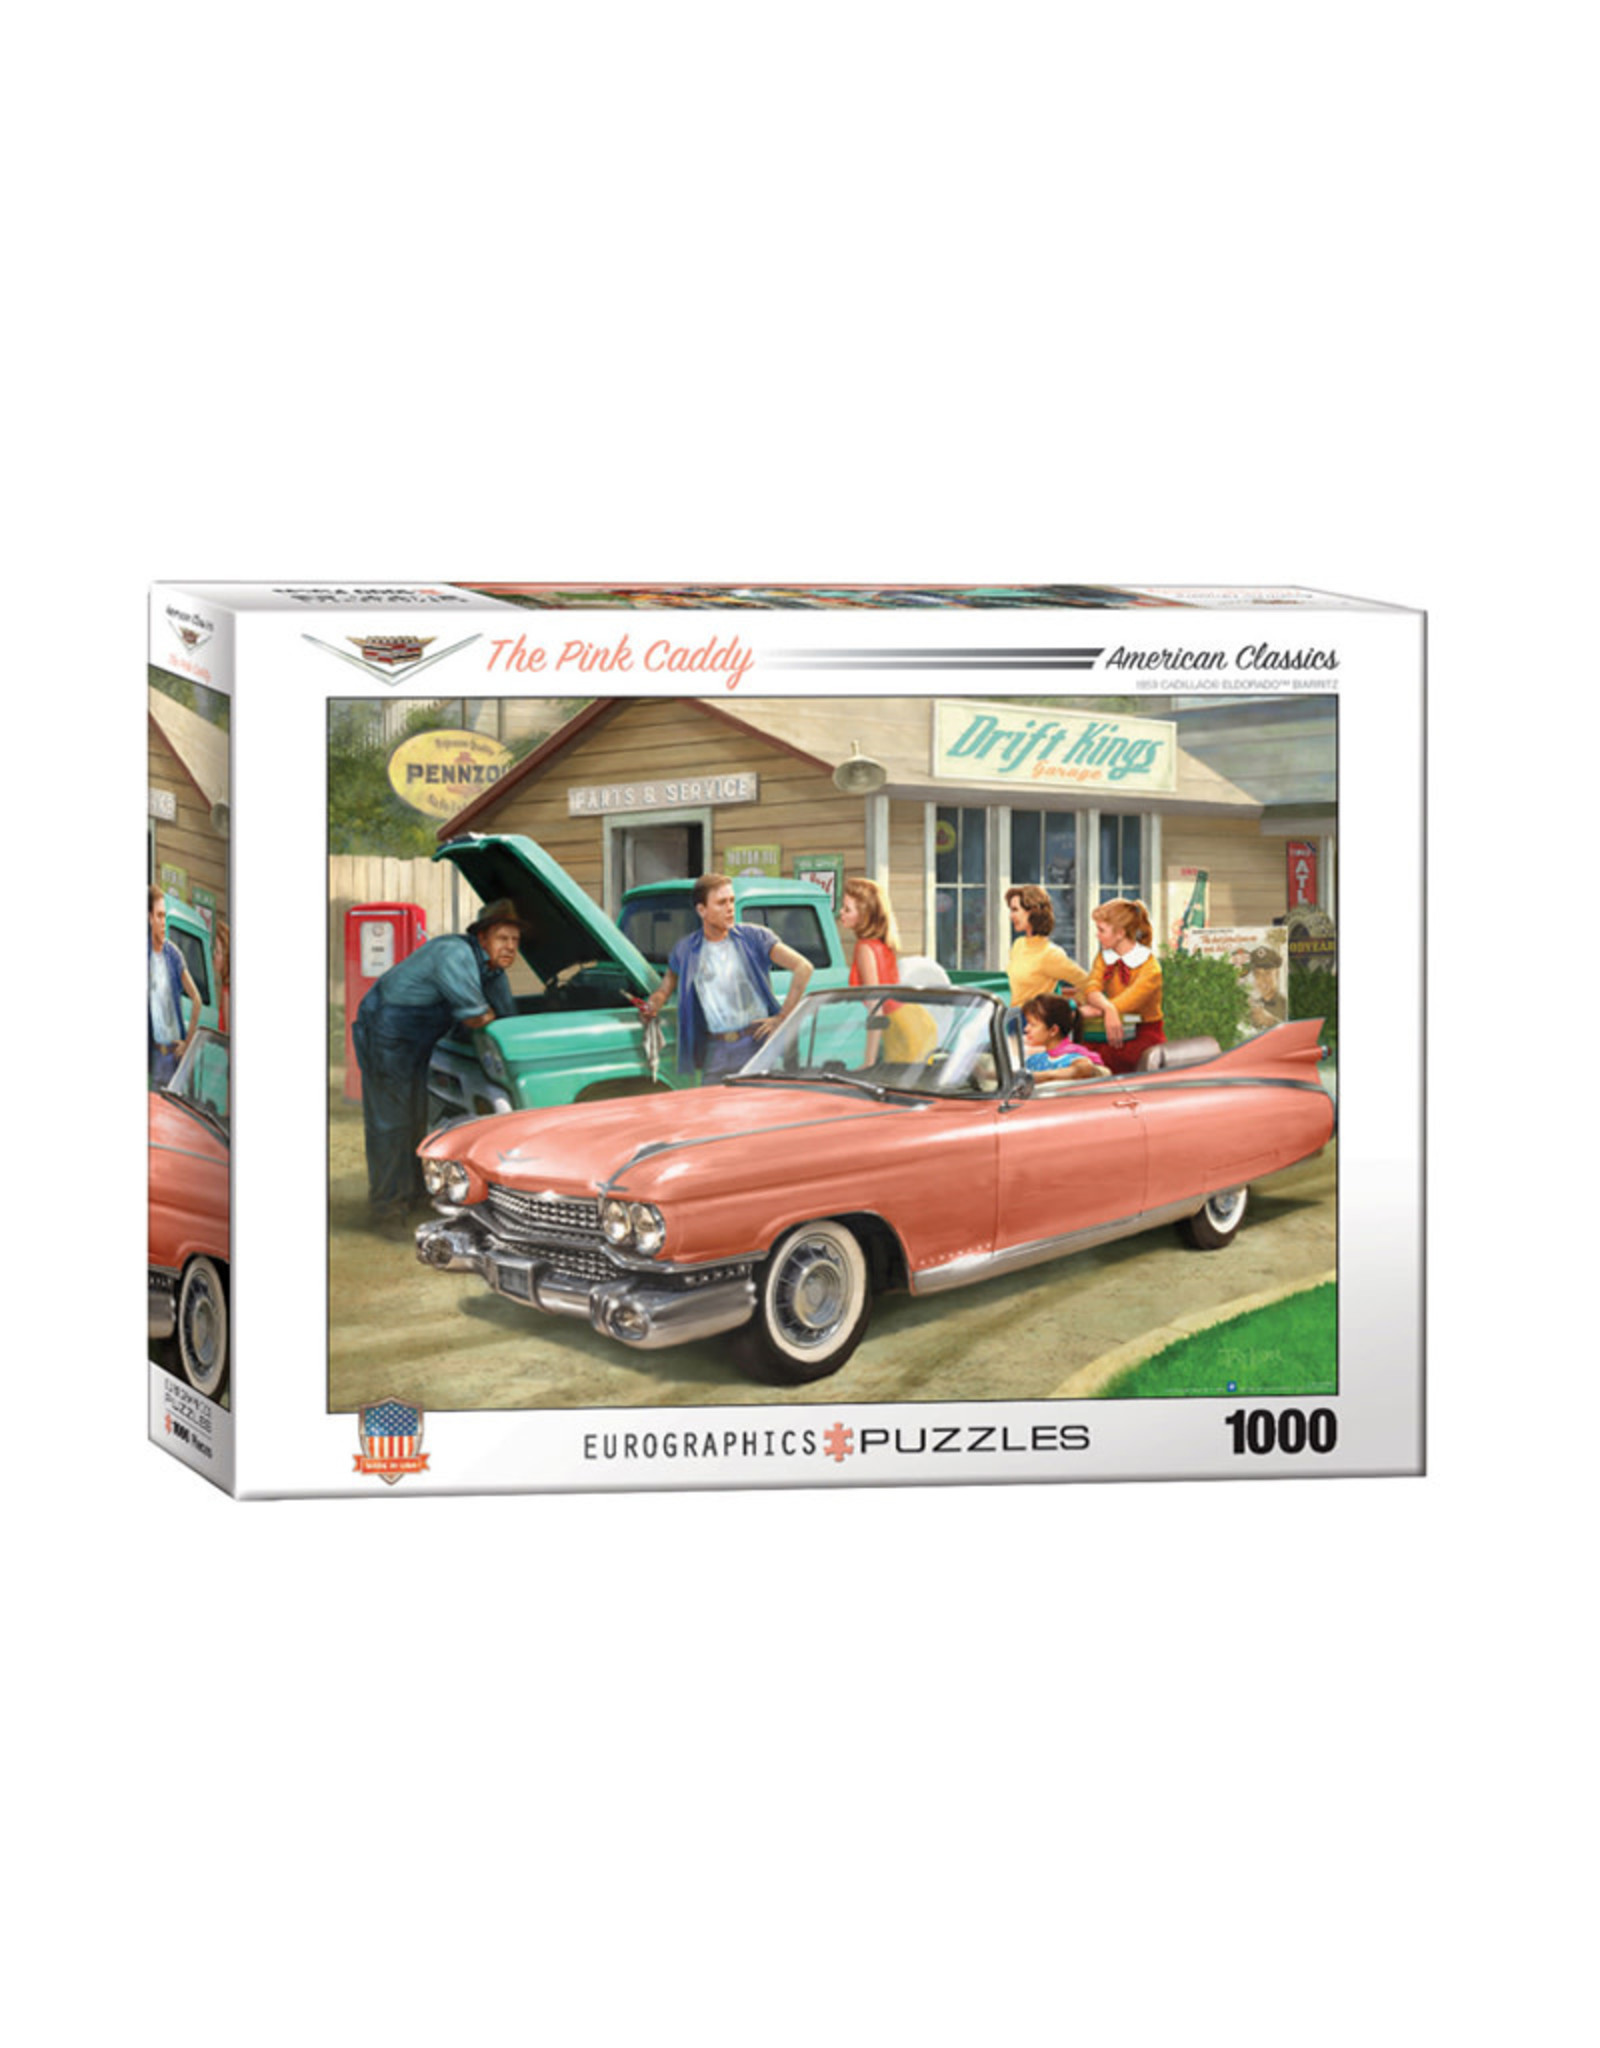 Eurographics The Pink Caddy Puzzle 1000 PCS